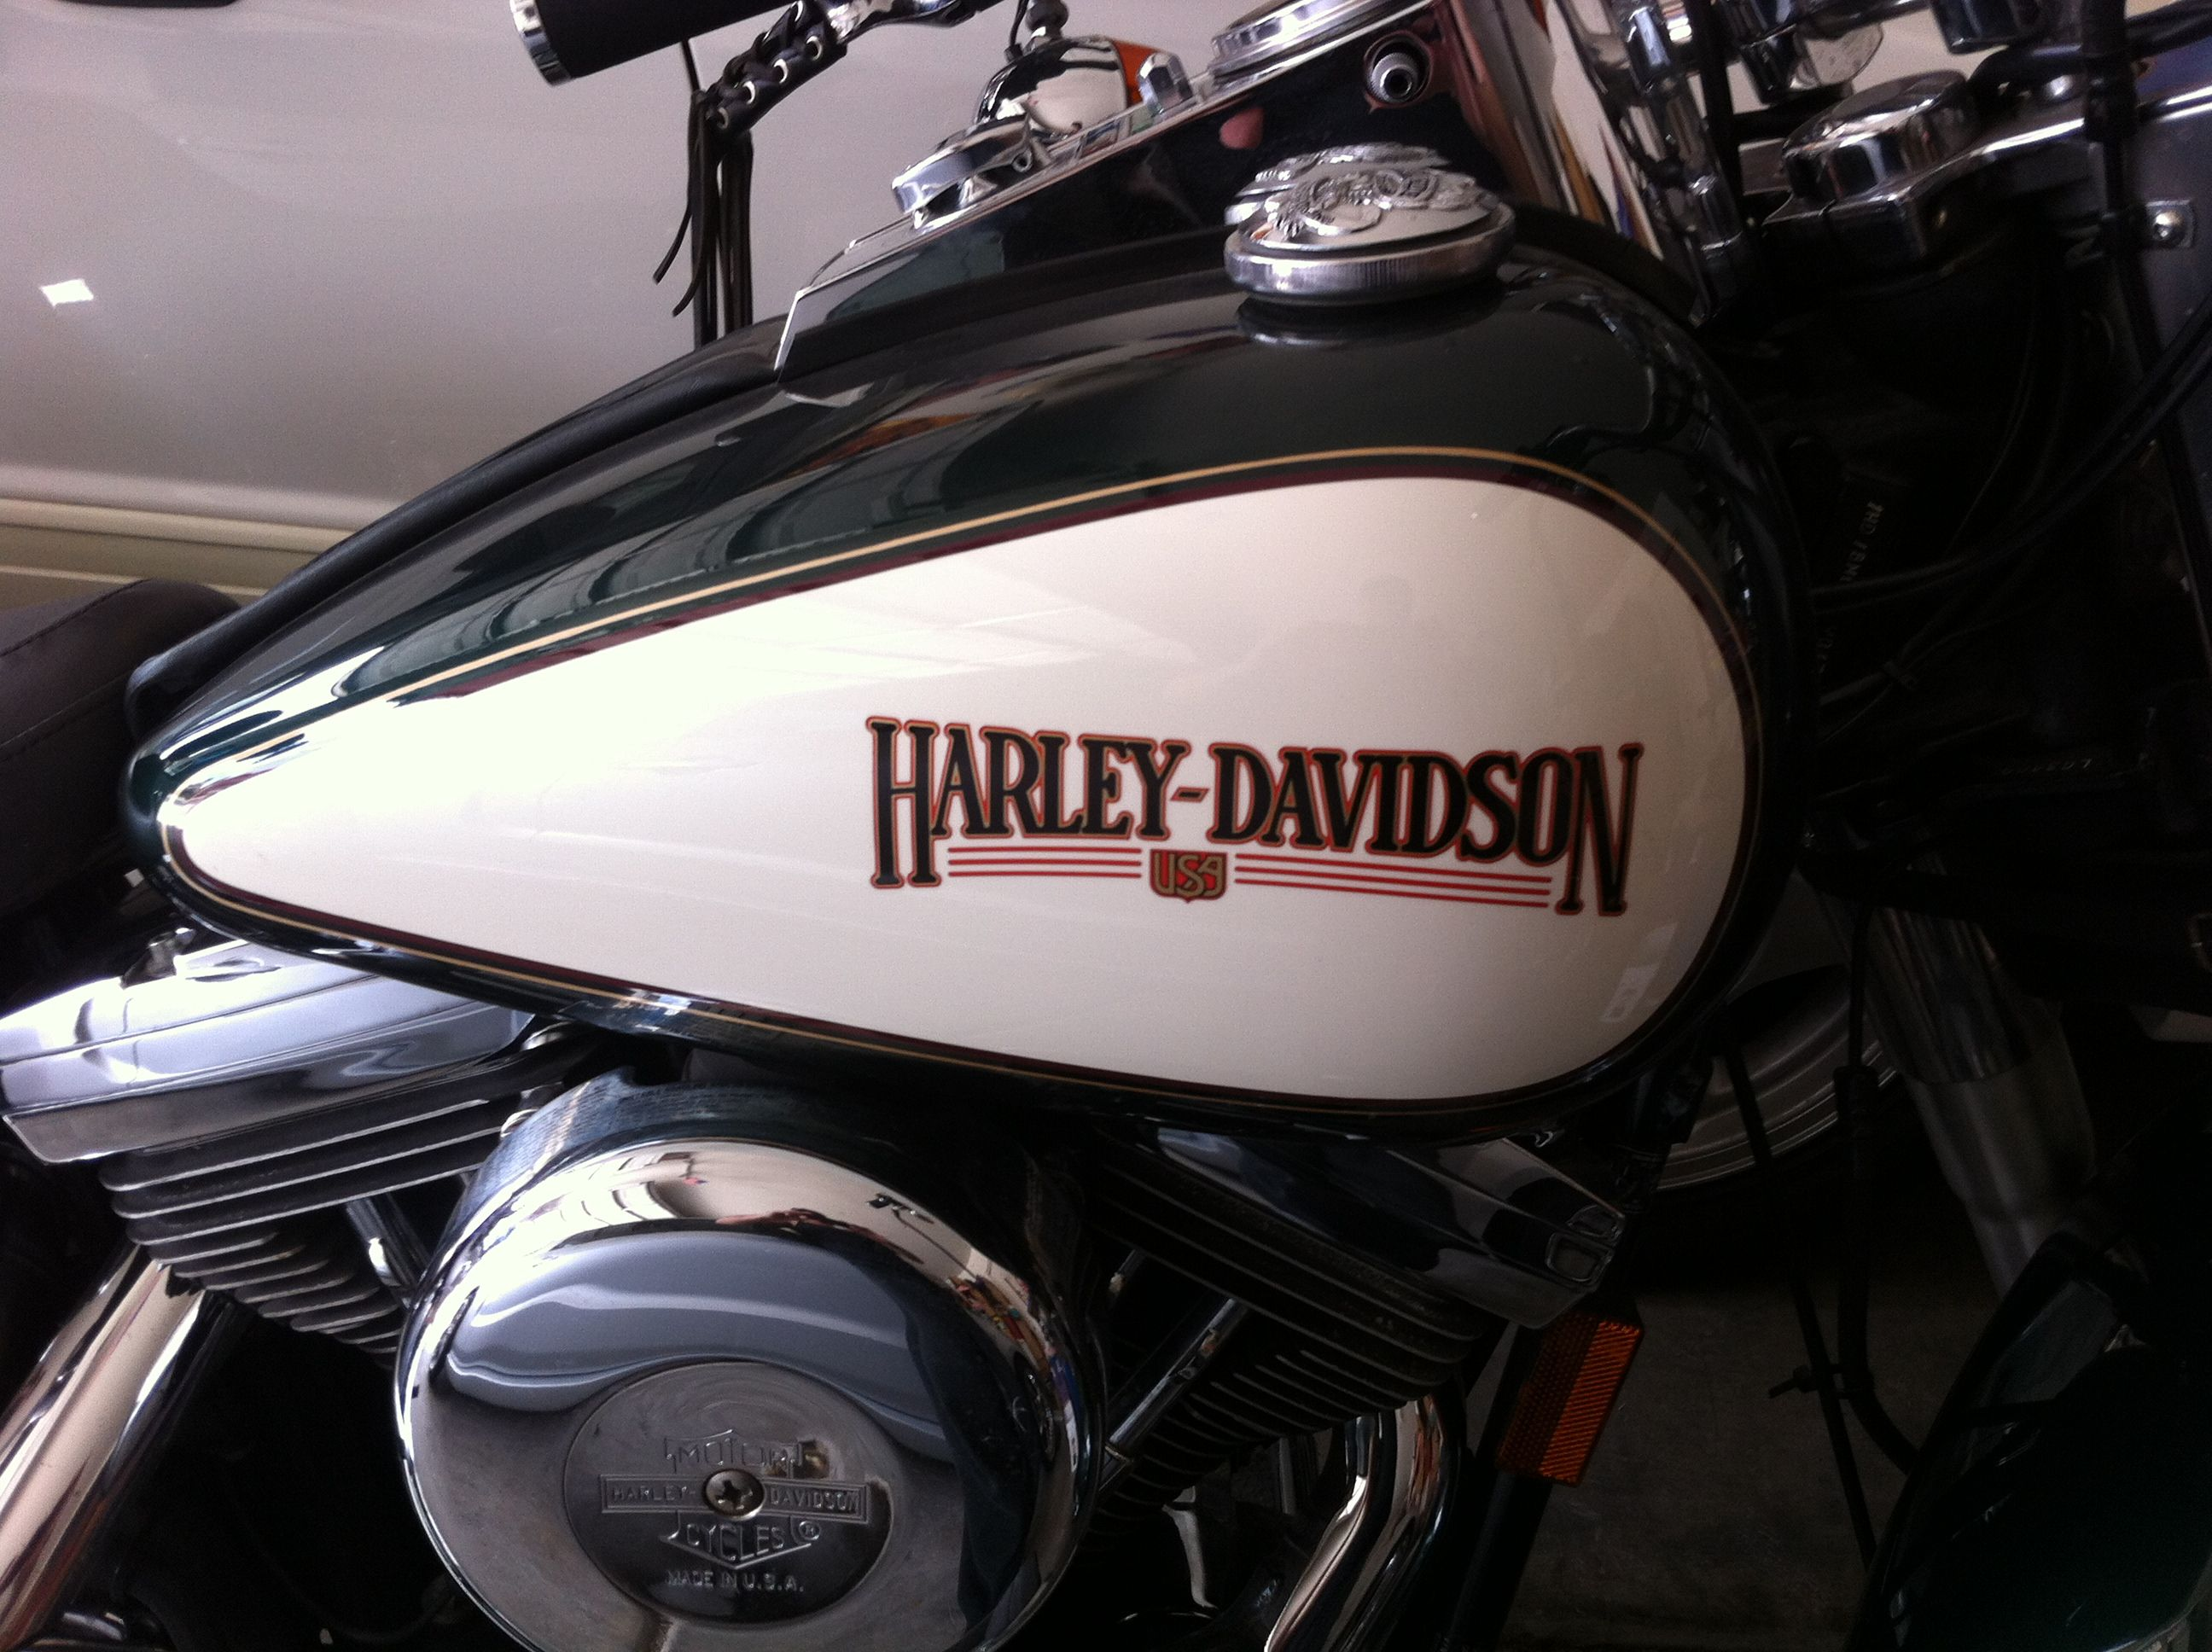 harley davidson gas tank original nostalgia paint job in. Black Bedroom Furniture Sets. Home Design Ideas